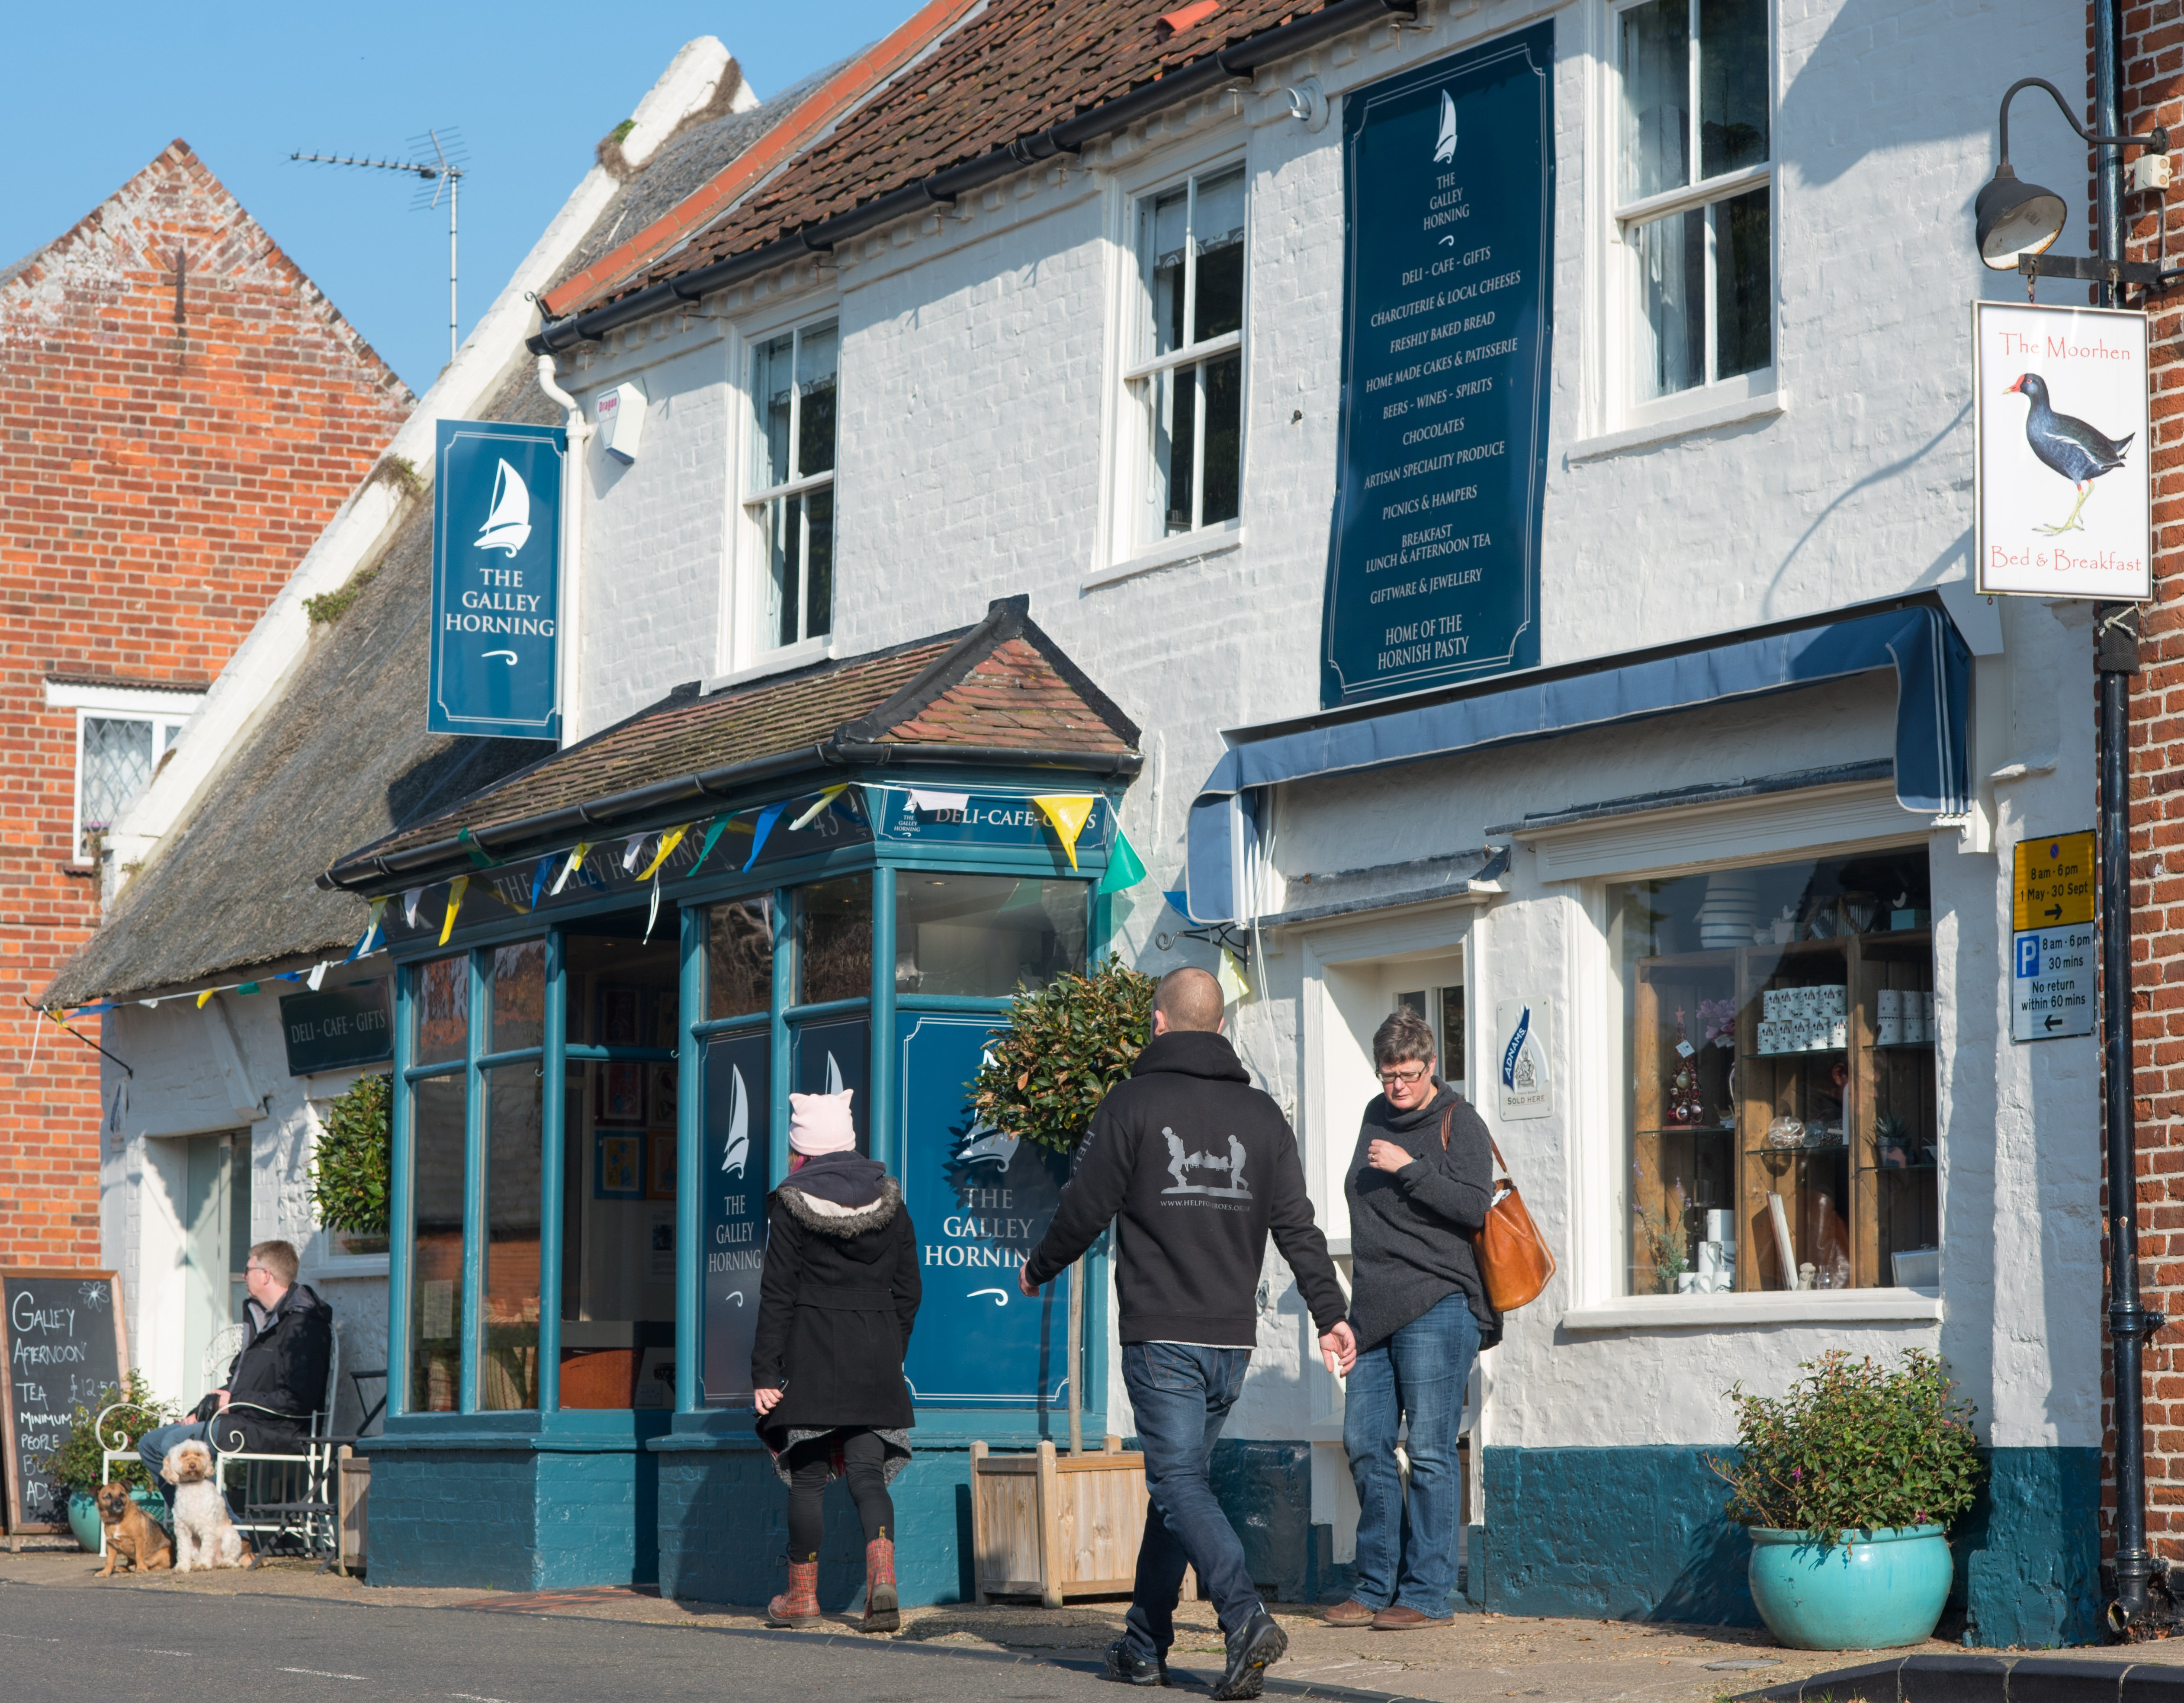 The Galley in Horning is a lovely place for a spot of lunch when considering cafes in the Broads National Park and the surrounding area.